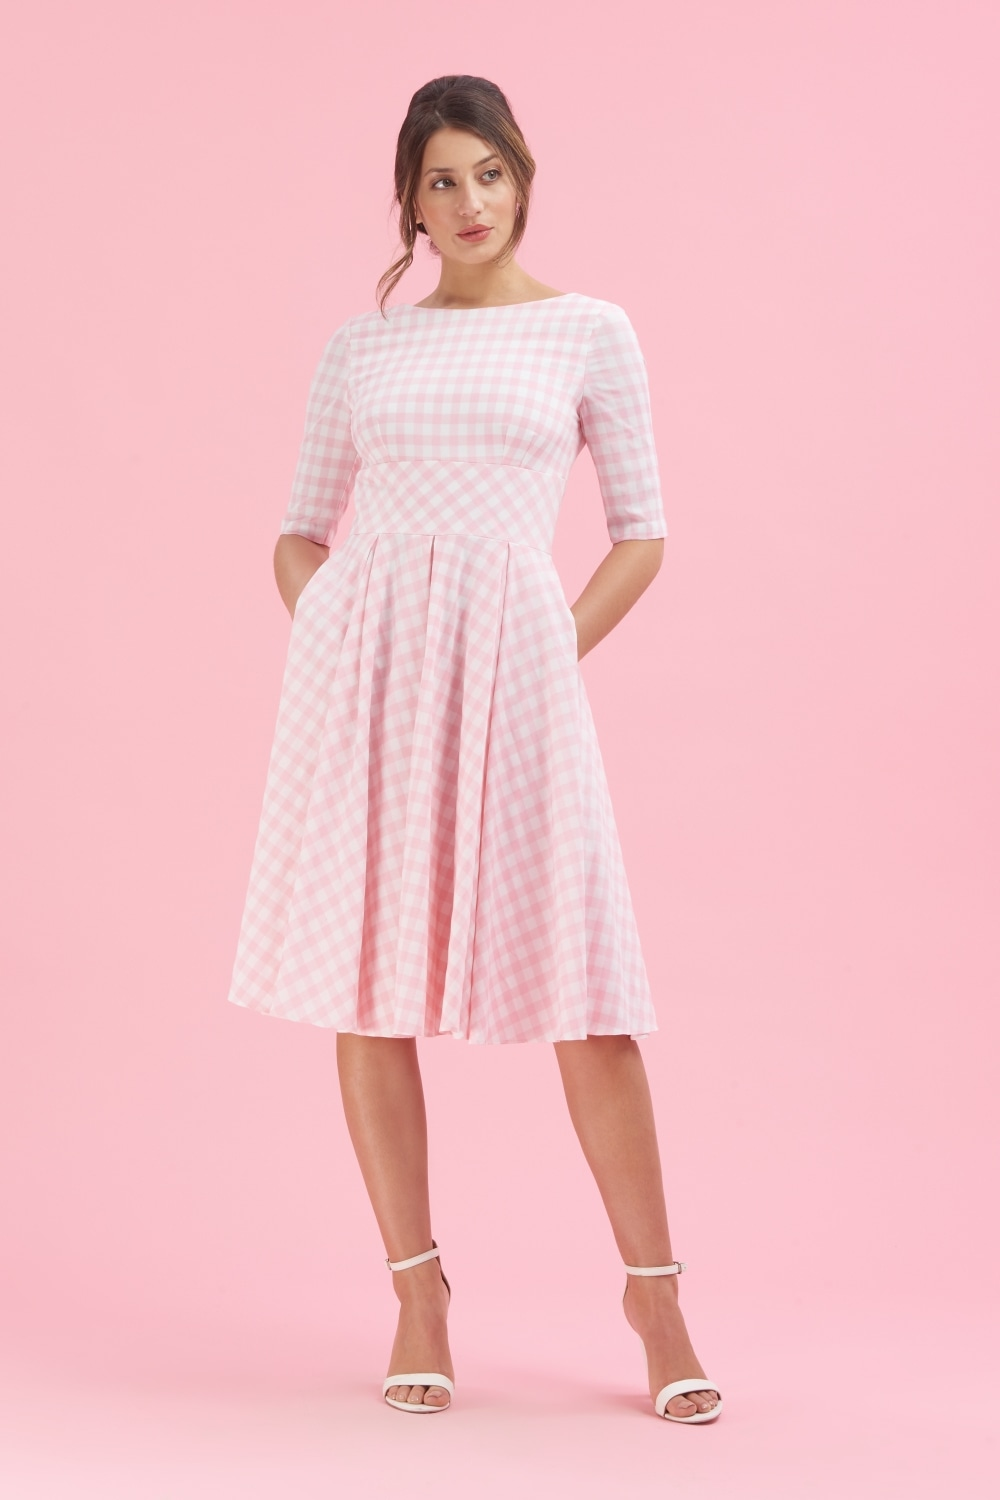 Pink Pretty dress pictures catalog photo